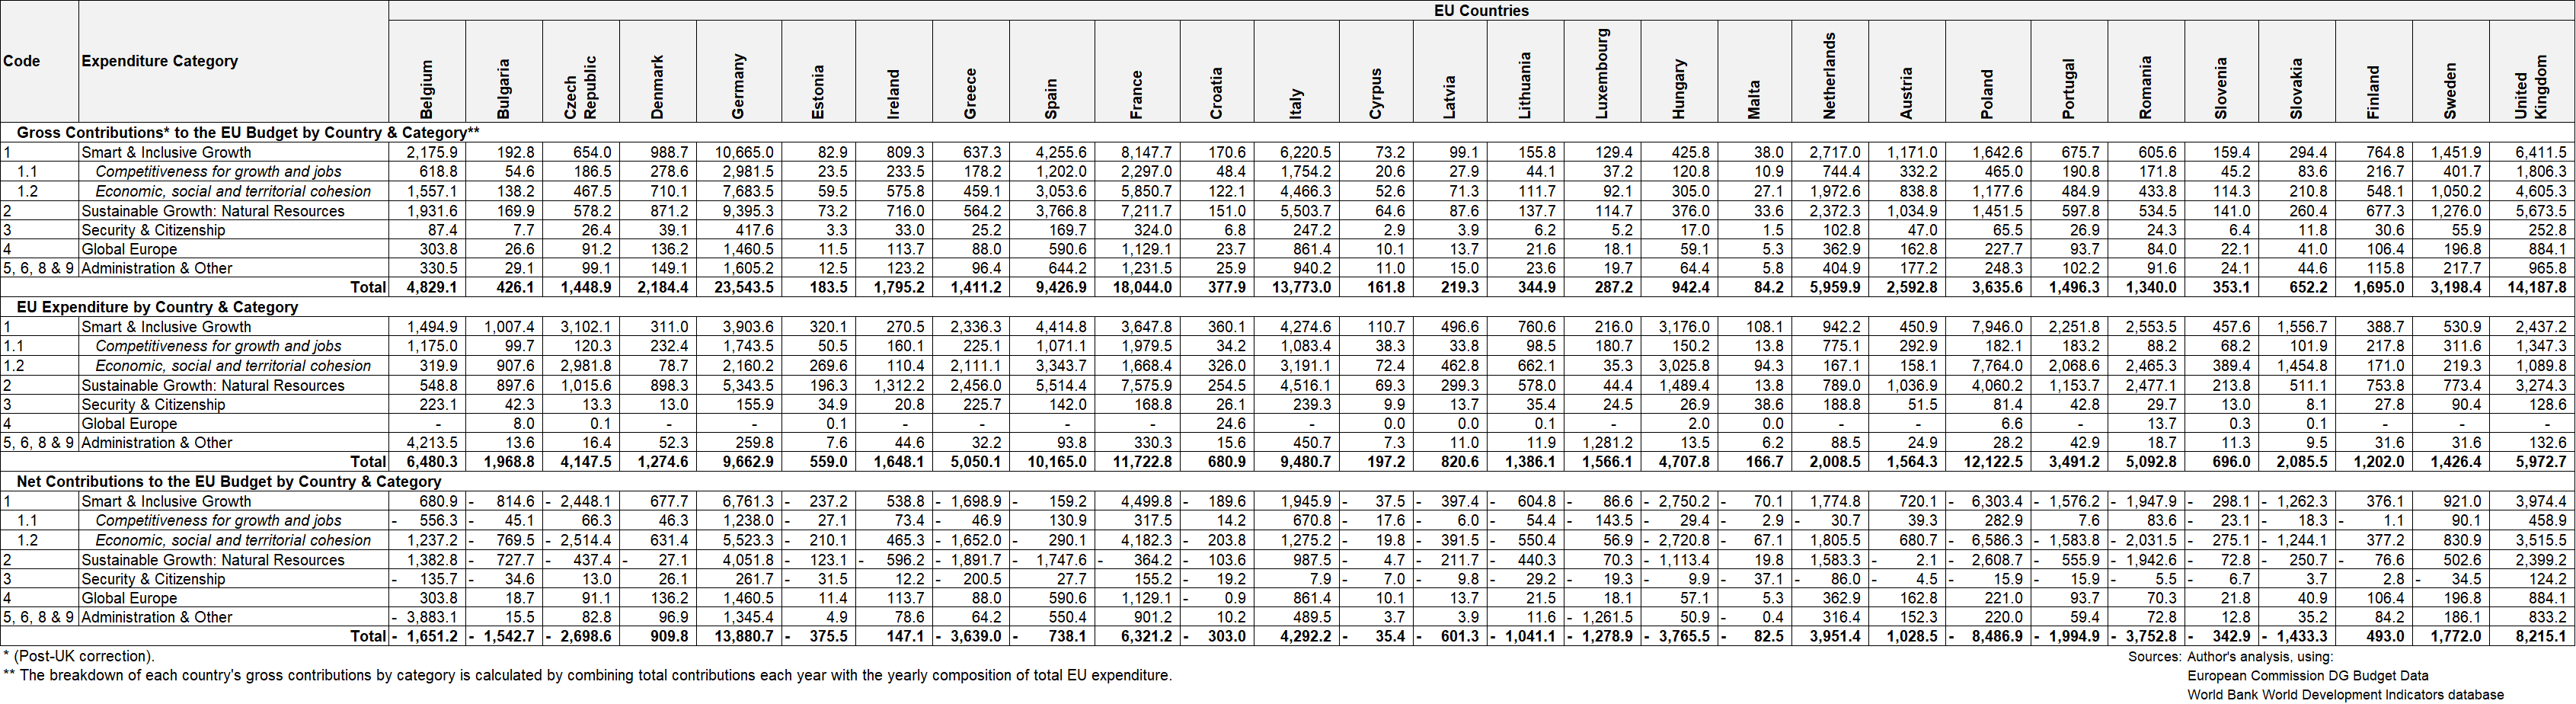 A table showing UK Net Fiscal Contributions to the EU Budget by Year and category